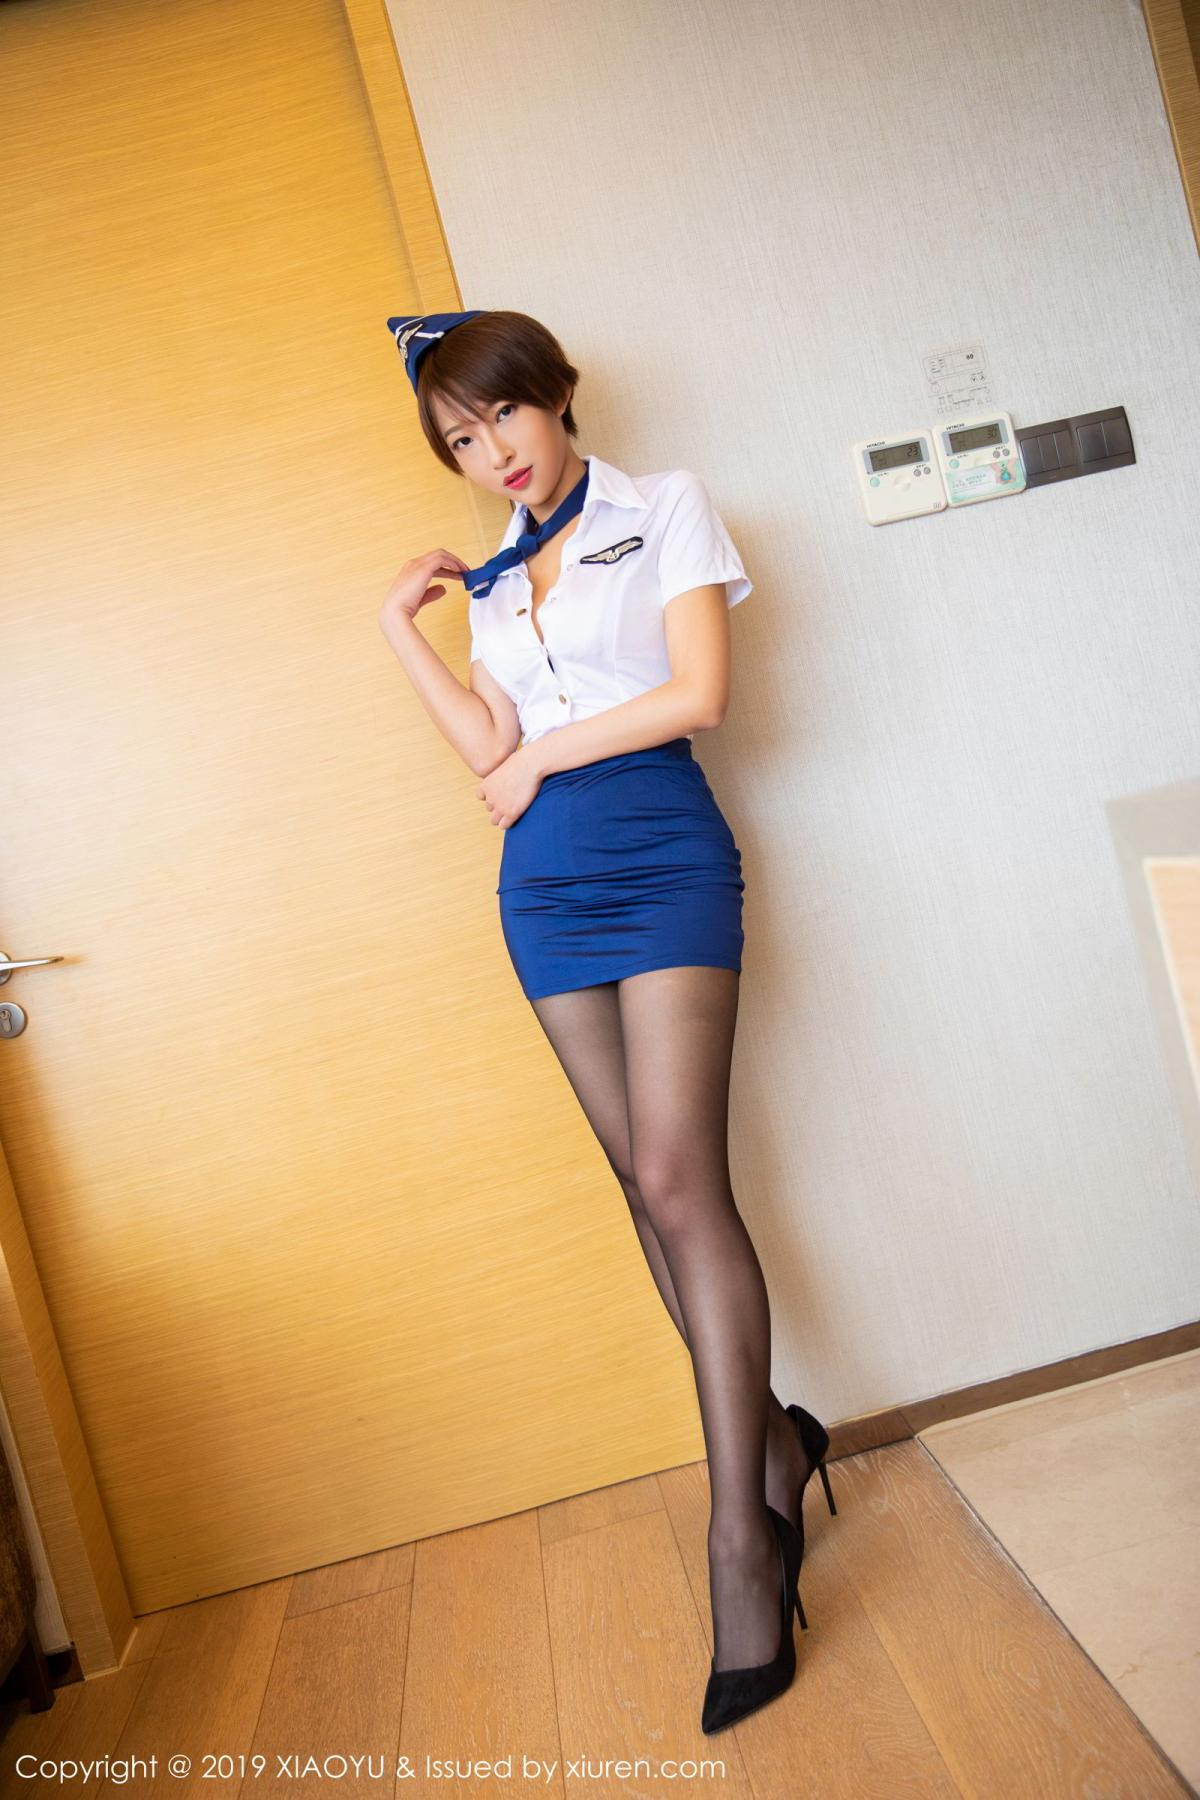 [XiaoYu] Vol.160 Li Zi Riz 1P, Black Silk, Li Zi Riz, Stewardess, Uniform, XiaoYu